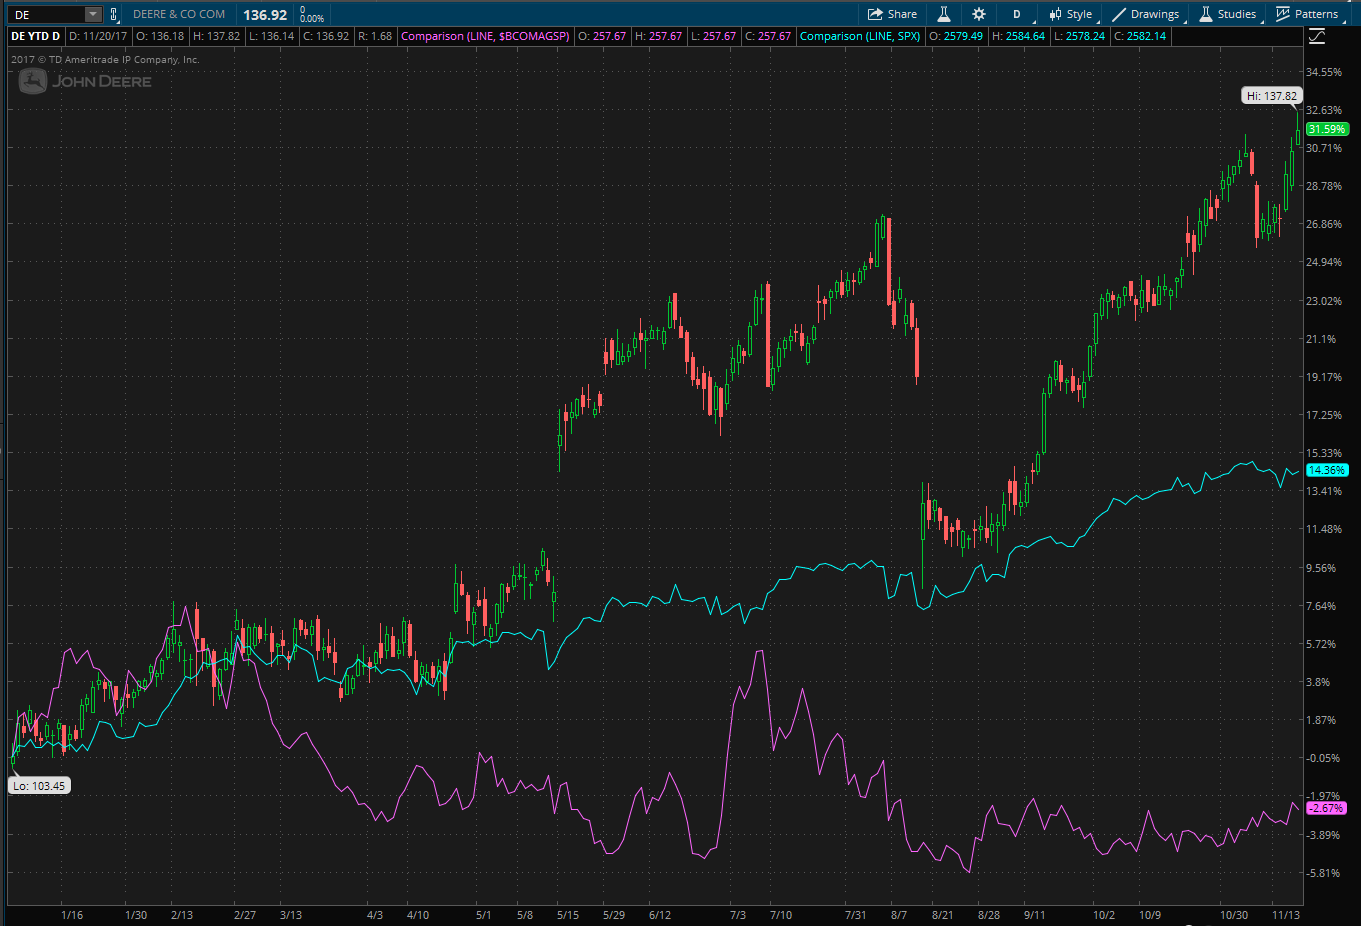 Deere stock chart showing ytd performance compared to S&P 500 and Bloomberg Agriculture Commodity Spot Index